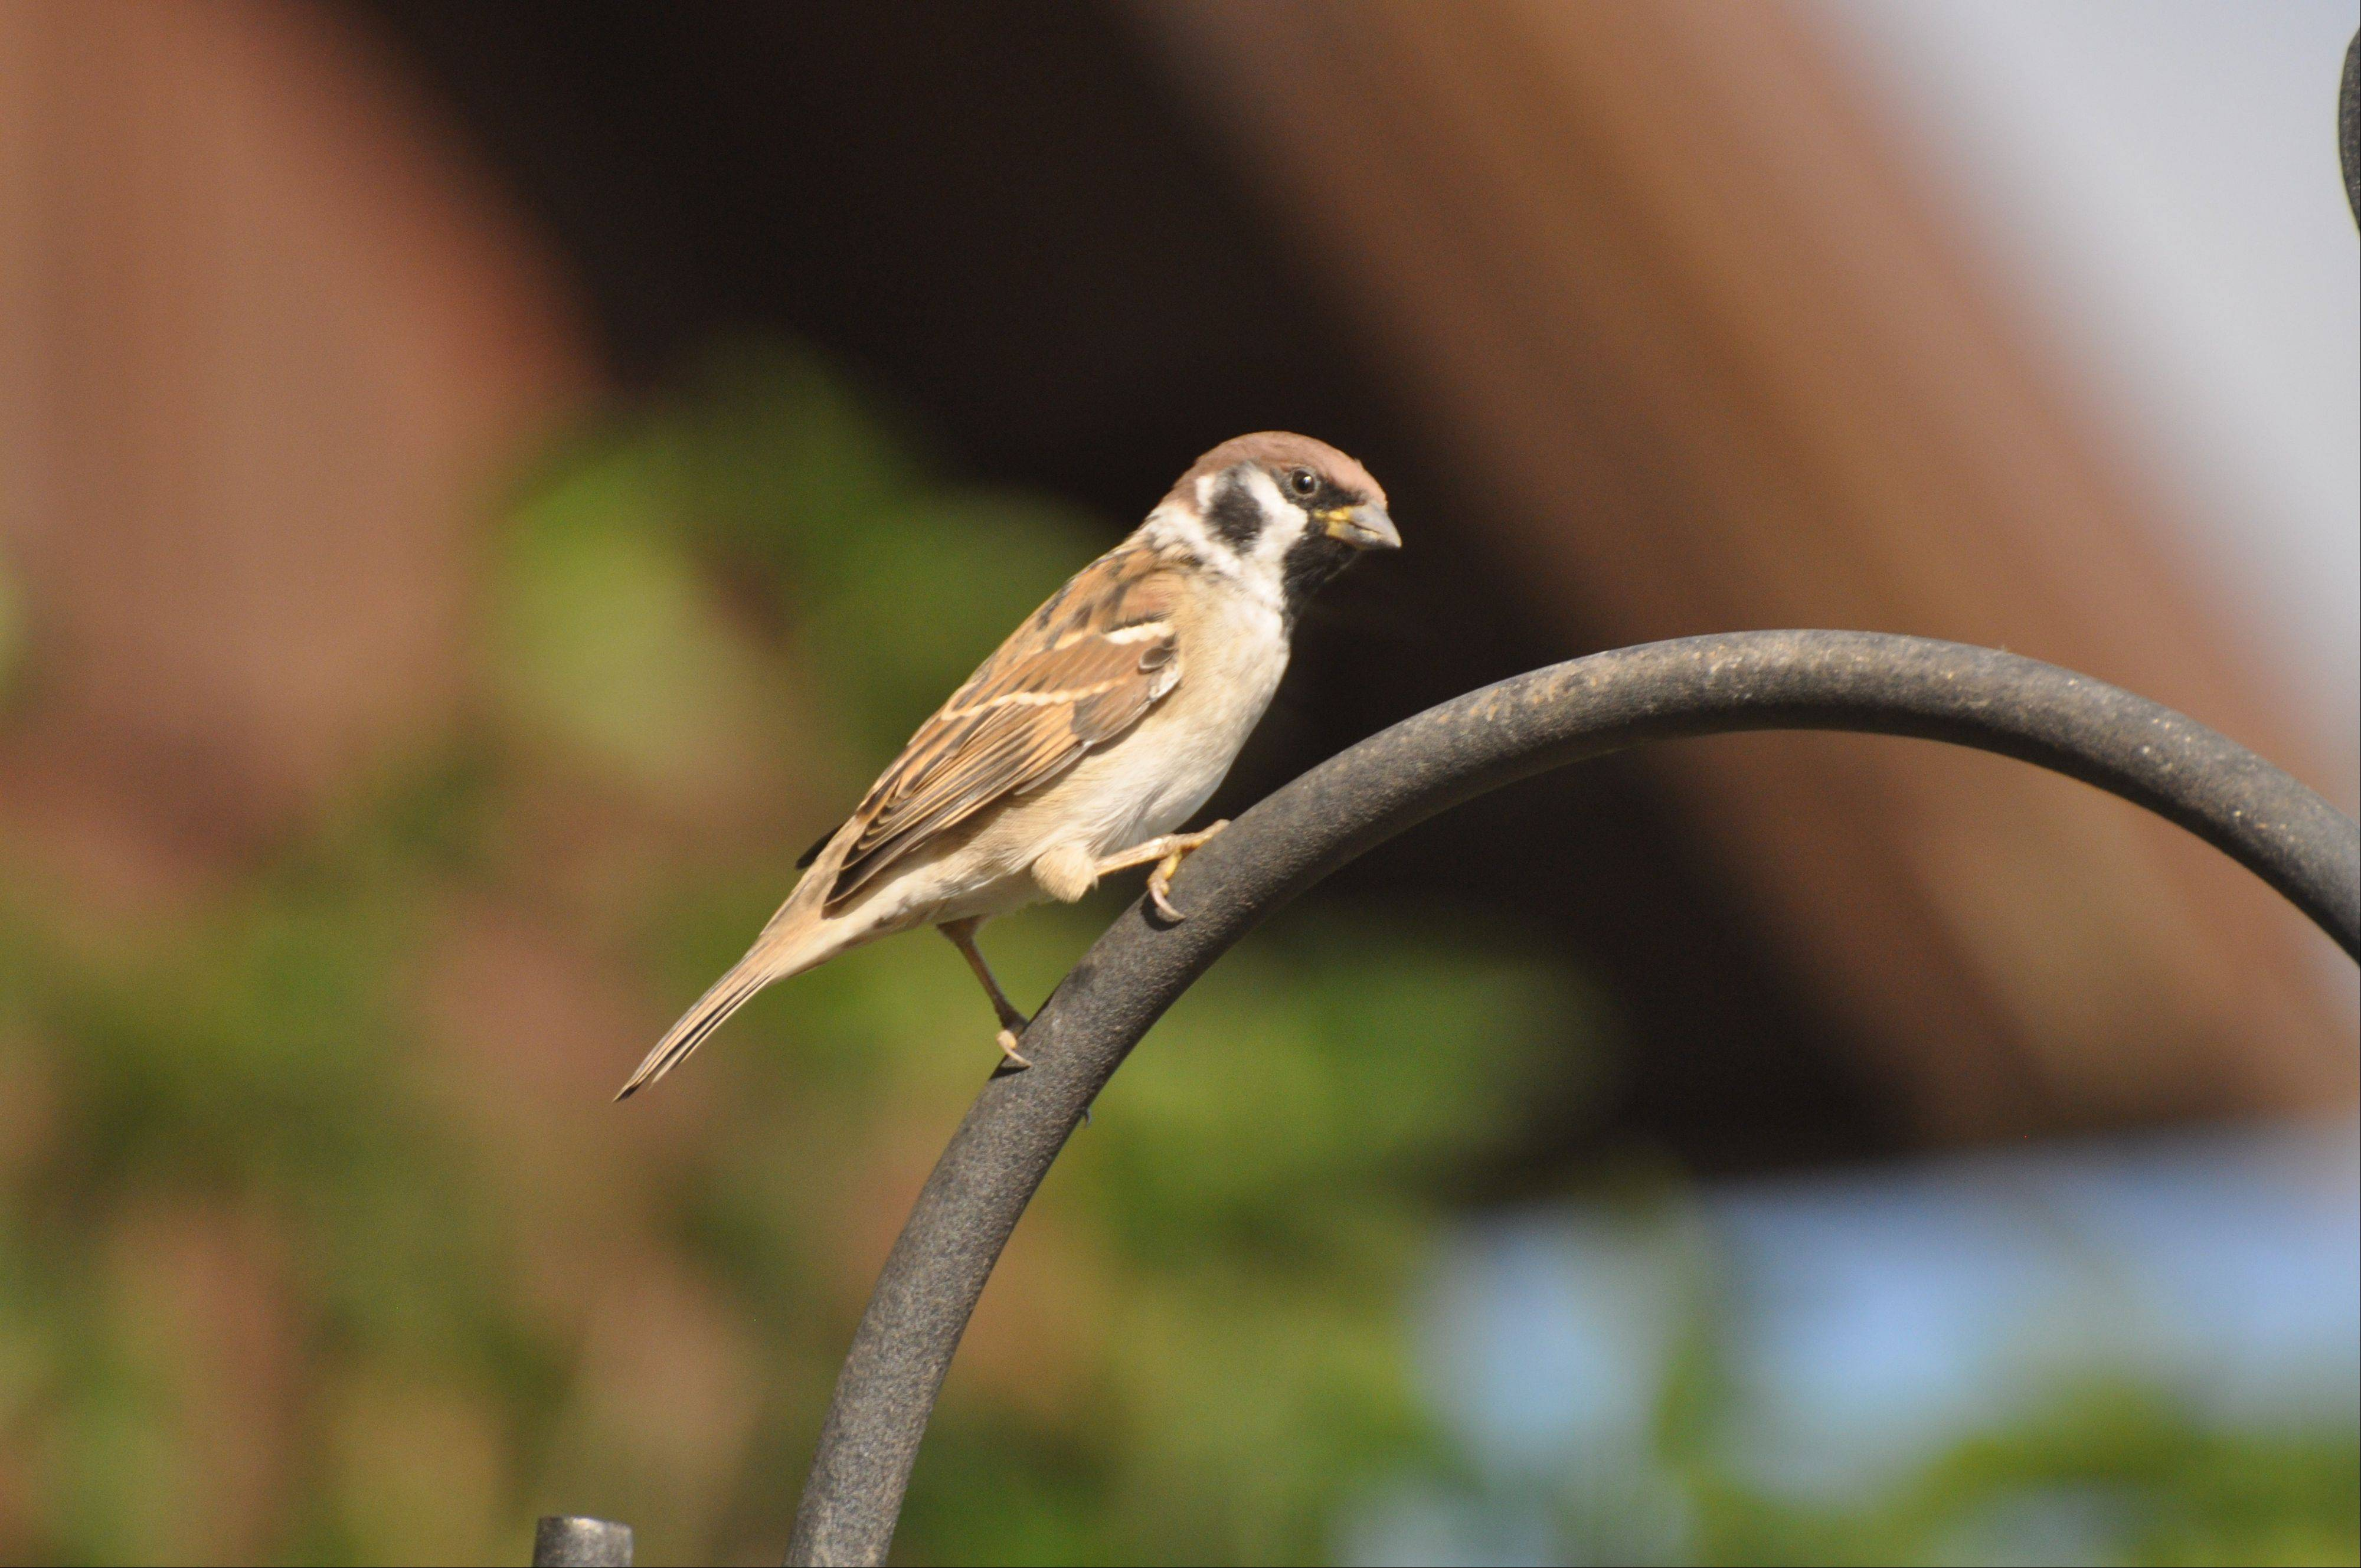 The Eurasian tree sparrow is easily distinguished from the abundant and closely related house sparrow by its smaller size, black spot on the cheek and a solid reddish-brown crown.